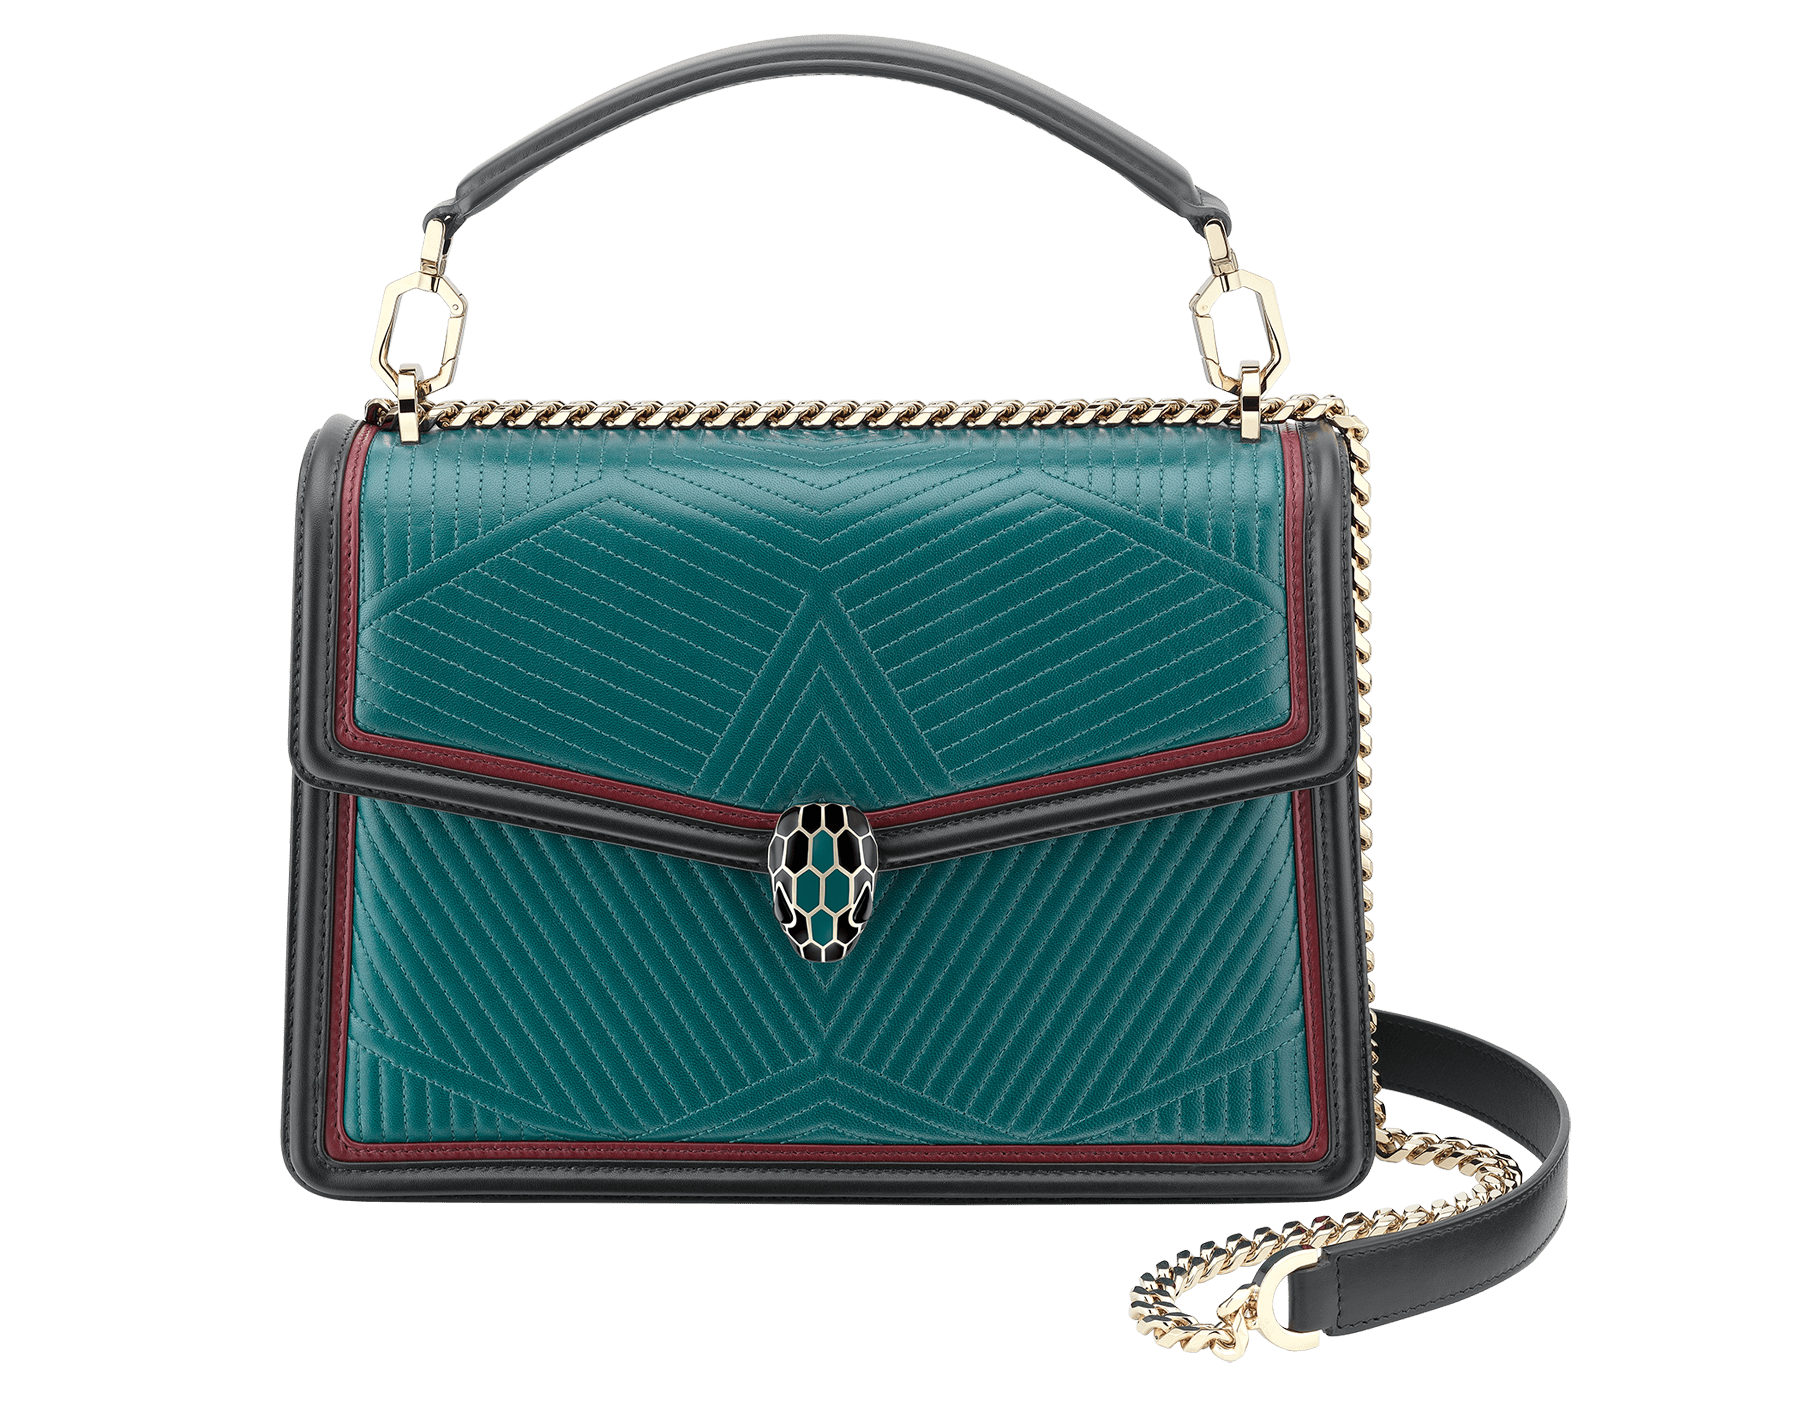 """Serpenti Diamond Blast"" shoulder bag in deep jade quilted nappa leather body and roman garnet and black calf leather frames. Iconic snakehead closure in light gold plated brass enriched with deep jade and black enamel and black onyx eyes. 287973 image 1"